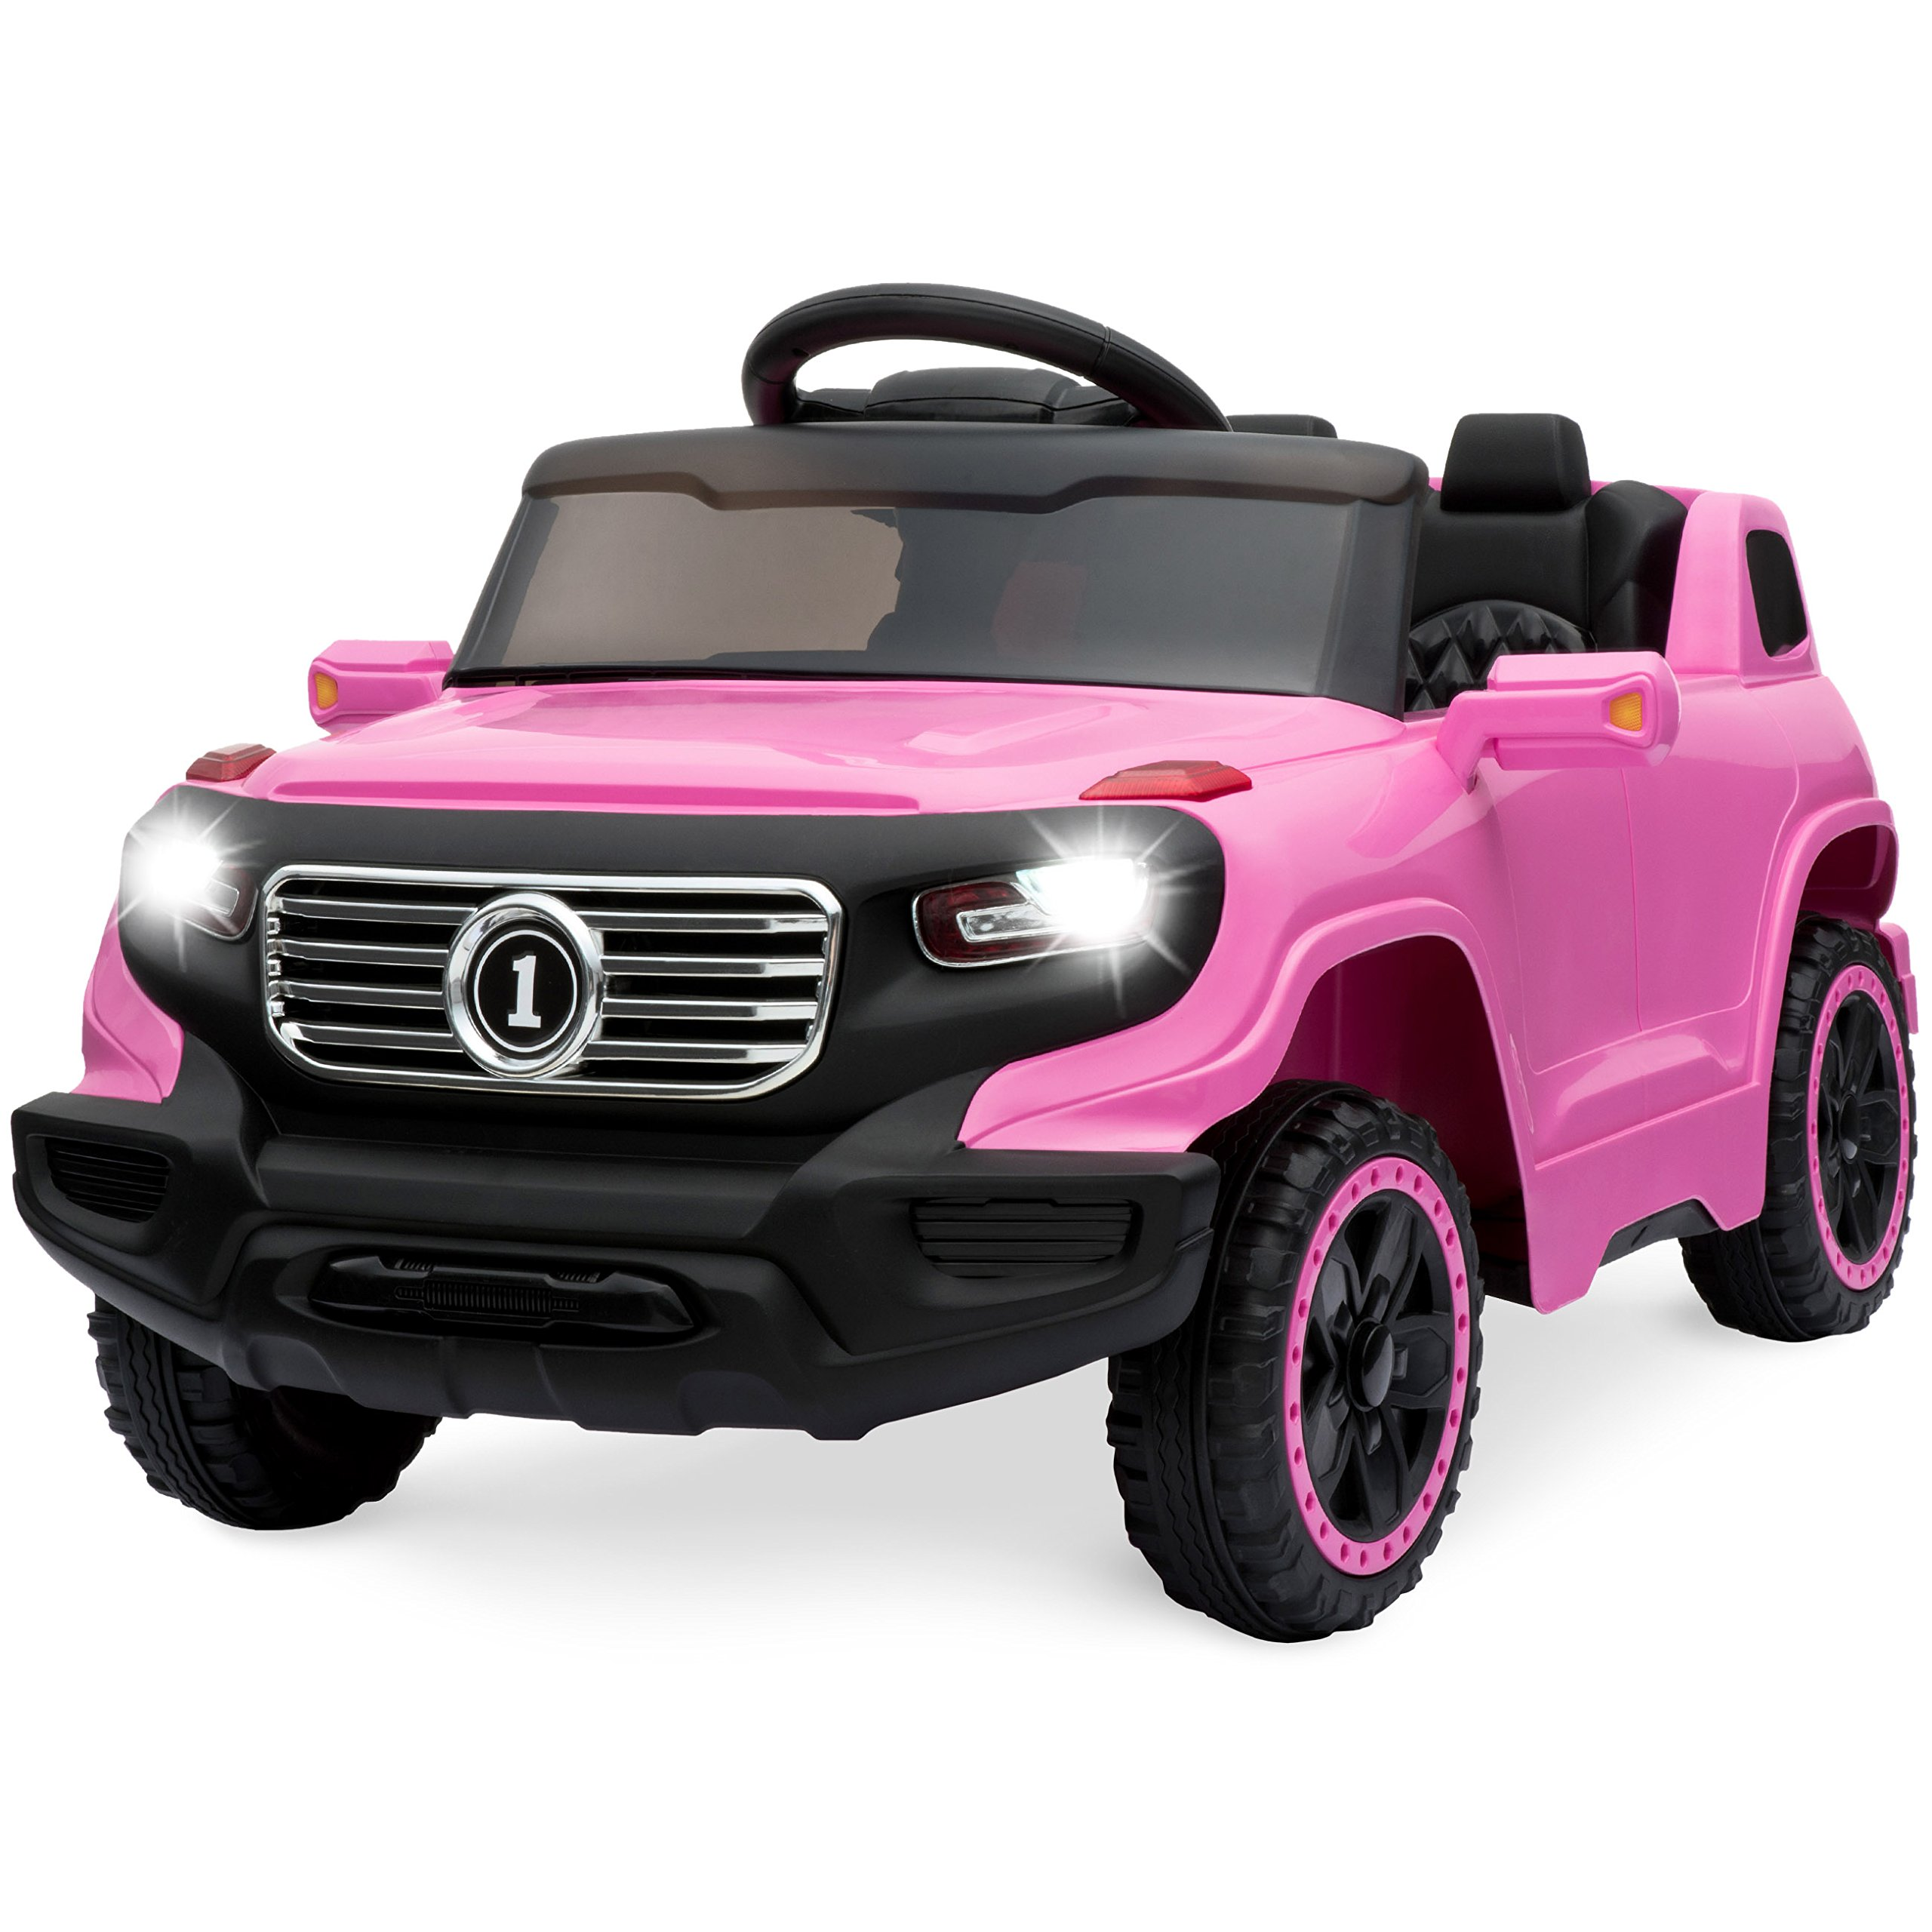 Best Choice Products Kids 6V Ride-On Truck with 30M Remote Control, 3 Speeds, LED Lights, Pink